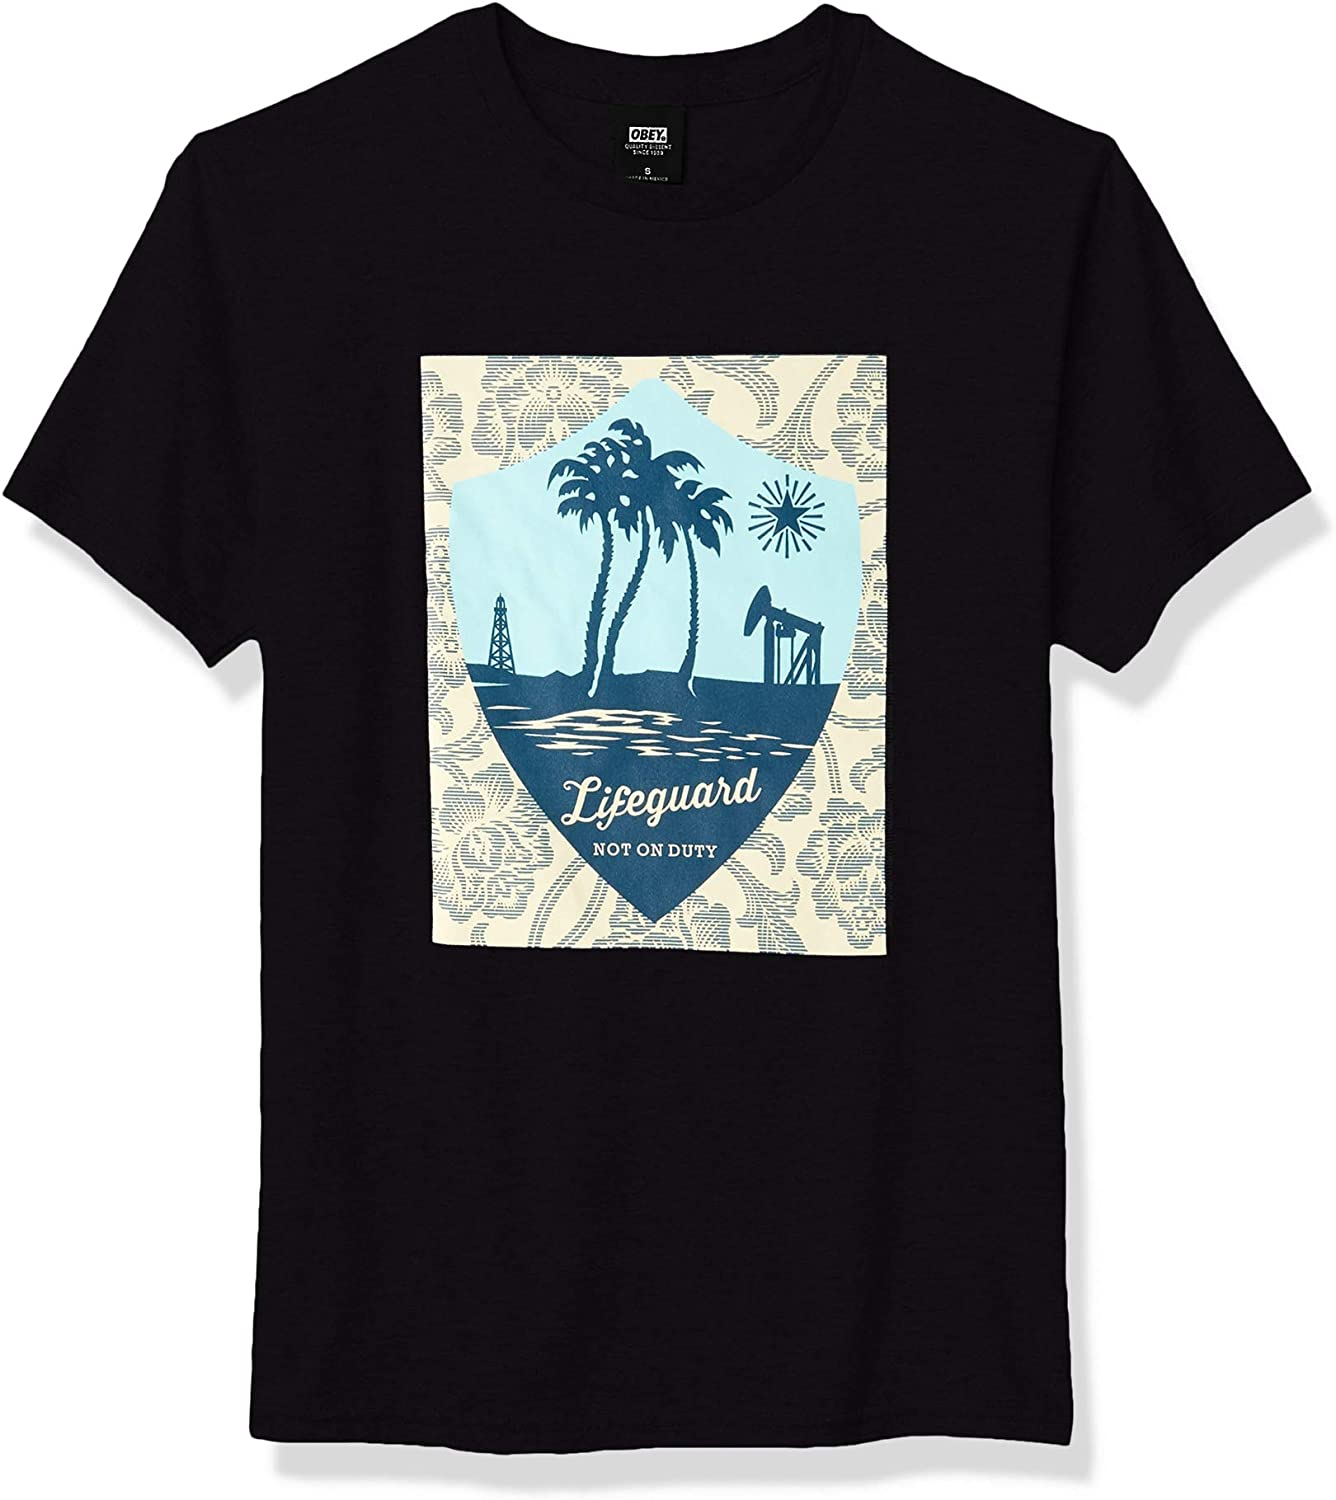 Obey Mens Basic Ss Lifeguard Not on Duty Tee